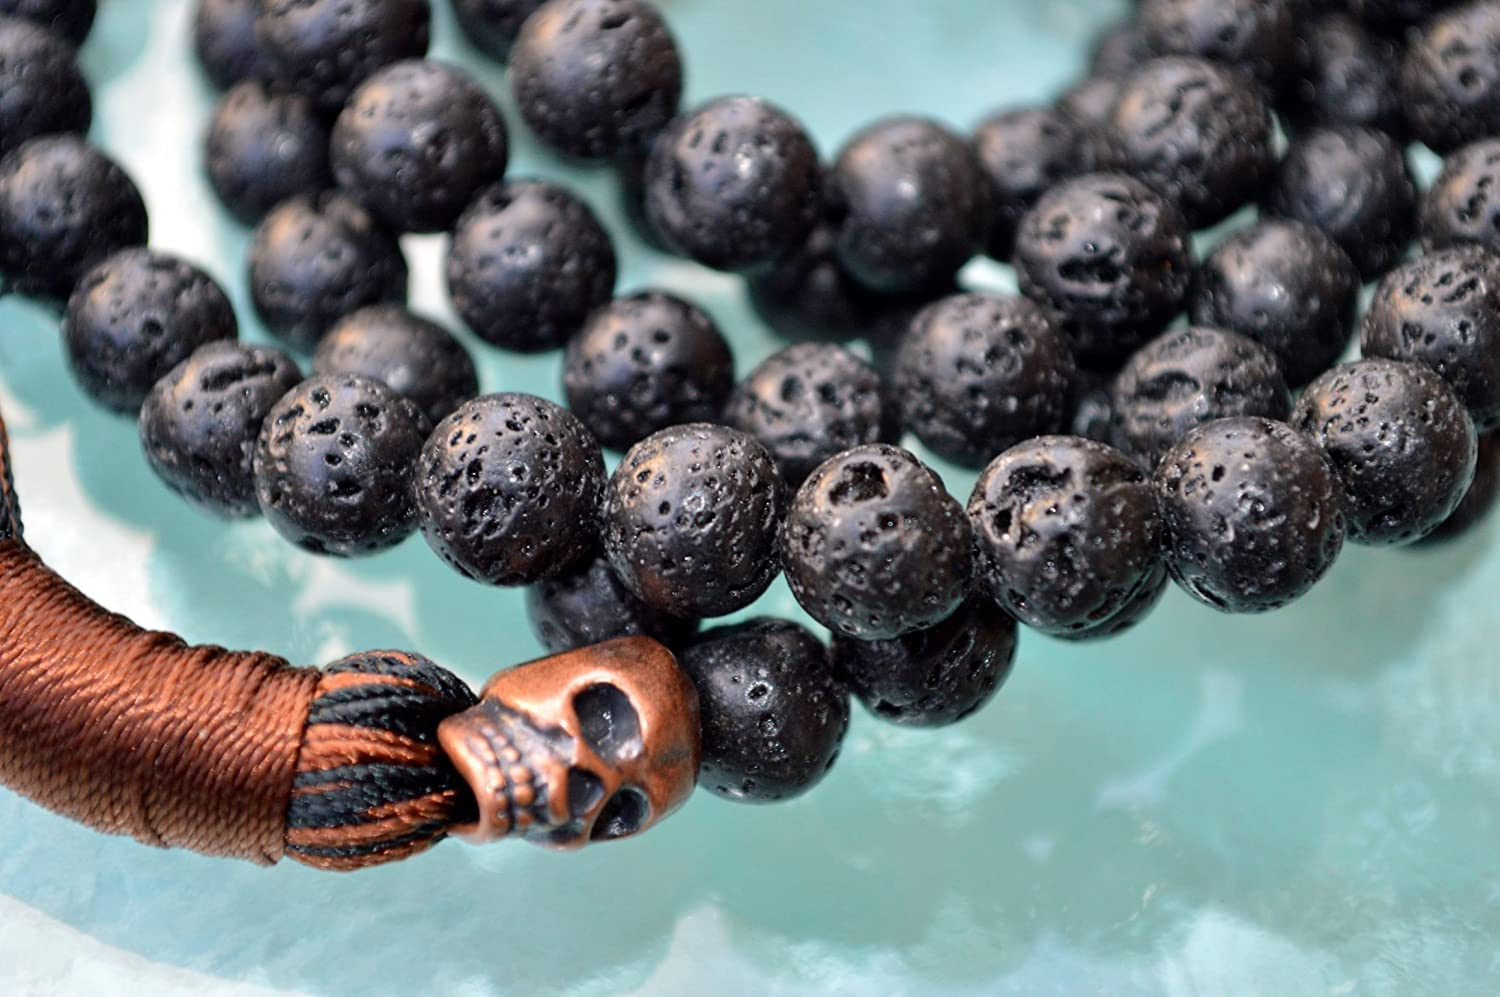 Black Volcano stone | Lava Mala beads necklace | 8mm | 108+1 Basalt Buddhist Beads | Copper Skull Guru Bead | Third Chakra | Self Esteem Will power Vitality Desire | US Seller